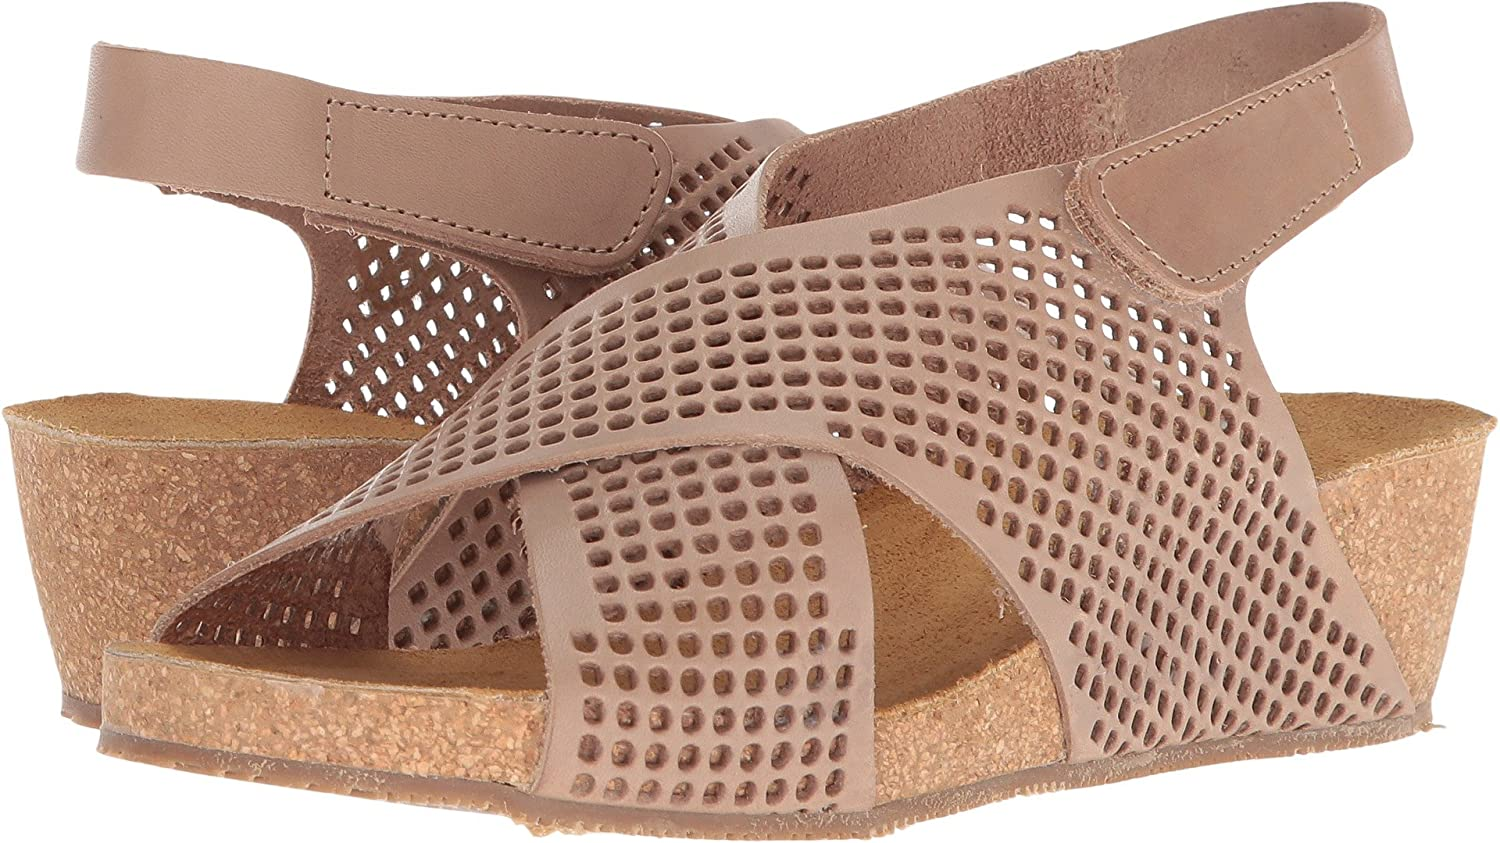 Eric Michael Womens August Wedge Sandal B076BR7MMY 40 M EU|Taupe